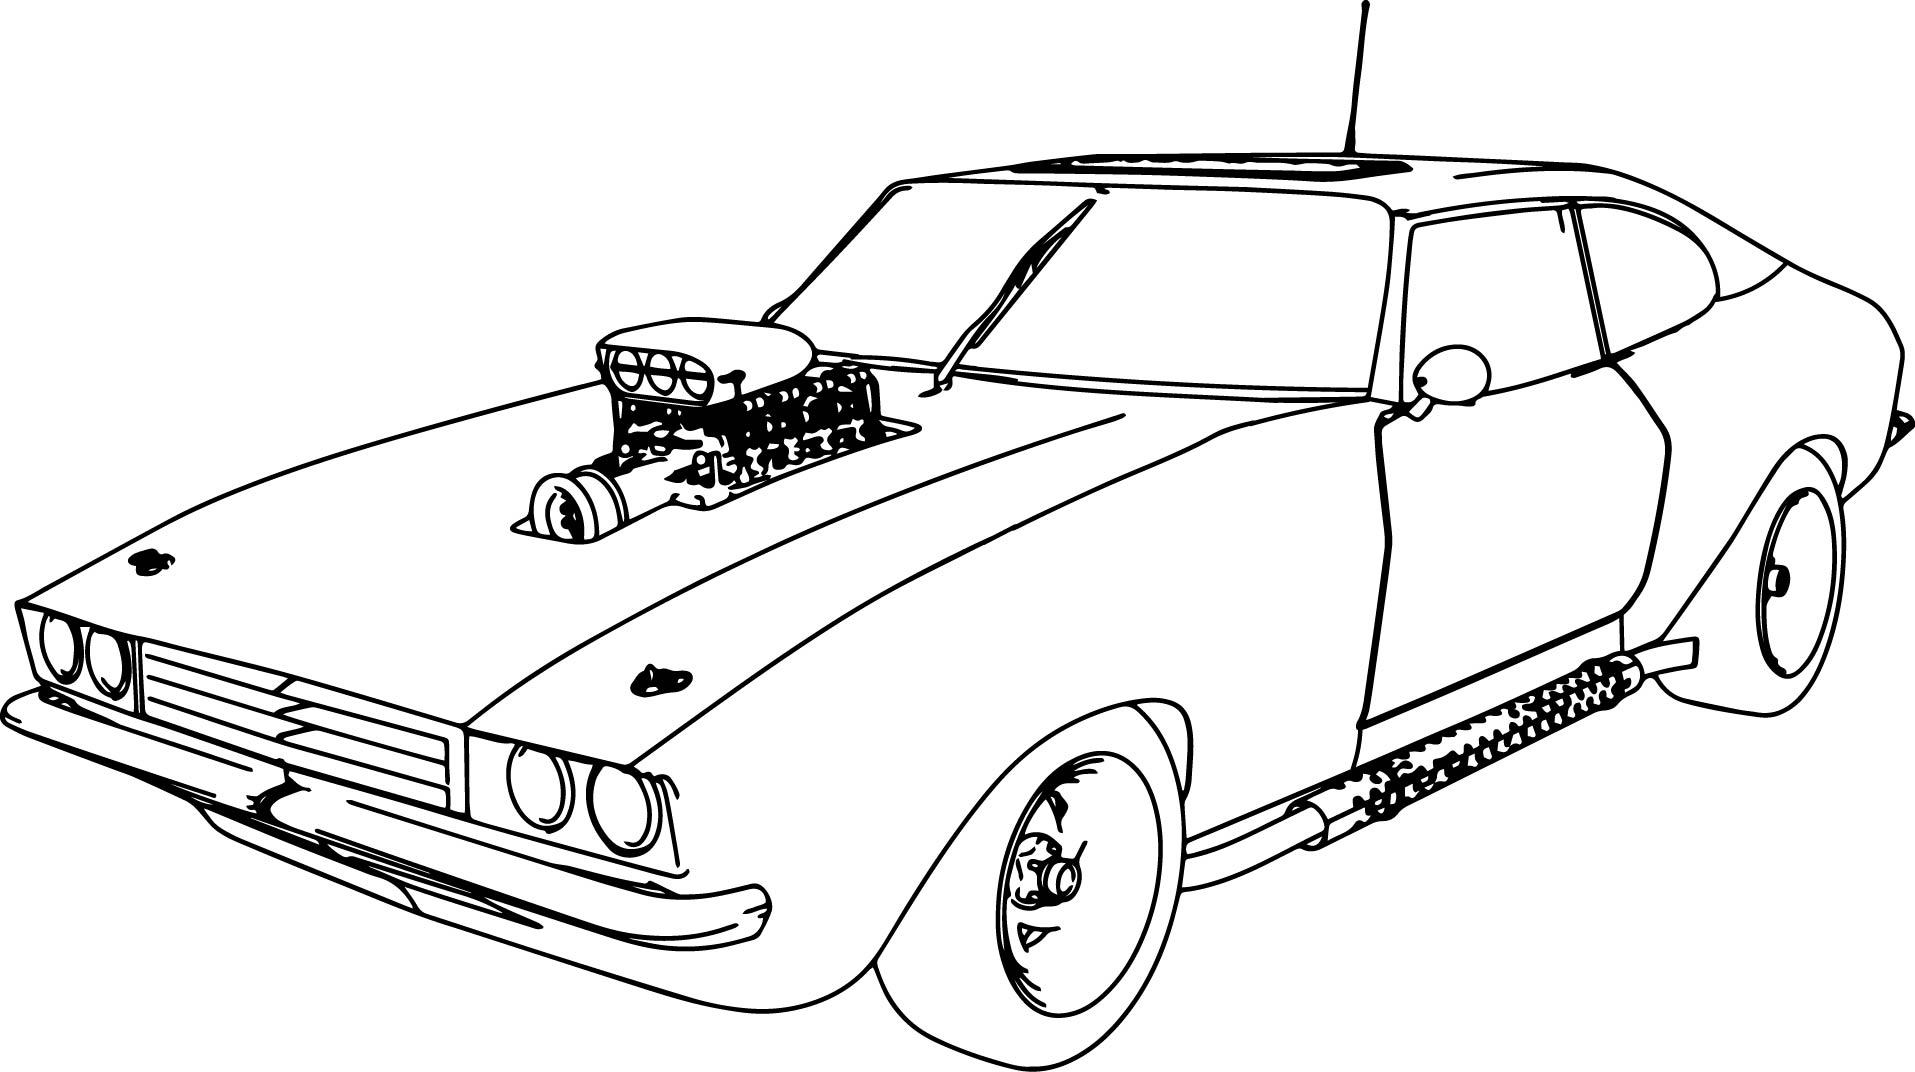 muscle car 70 old sport car coloring page sports car coloring pages